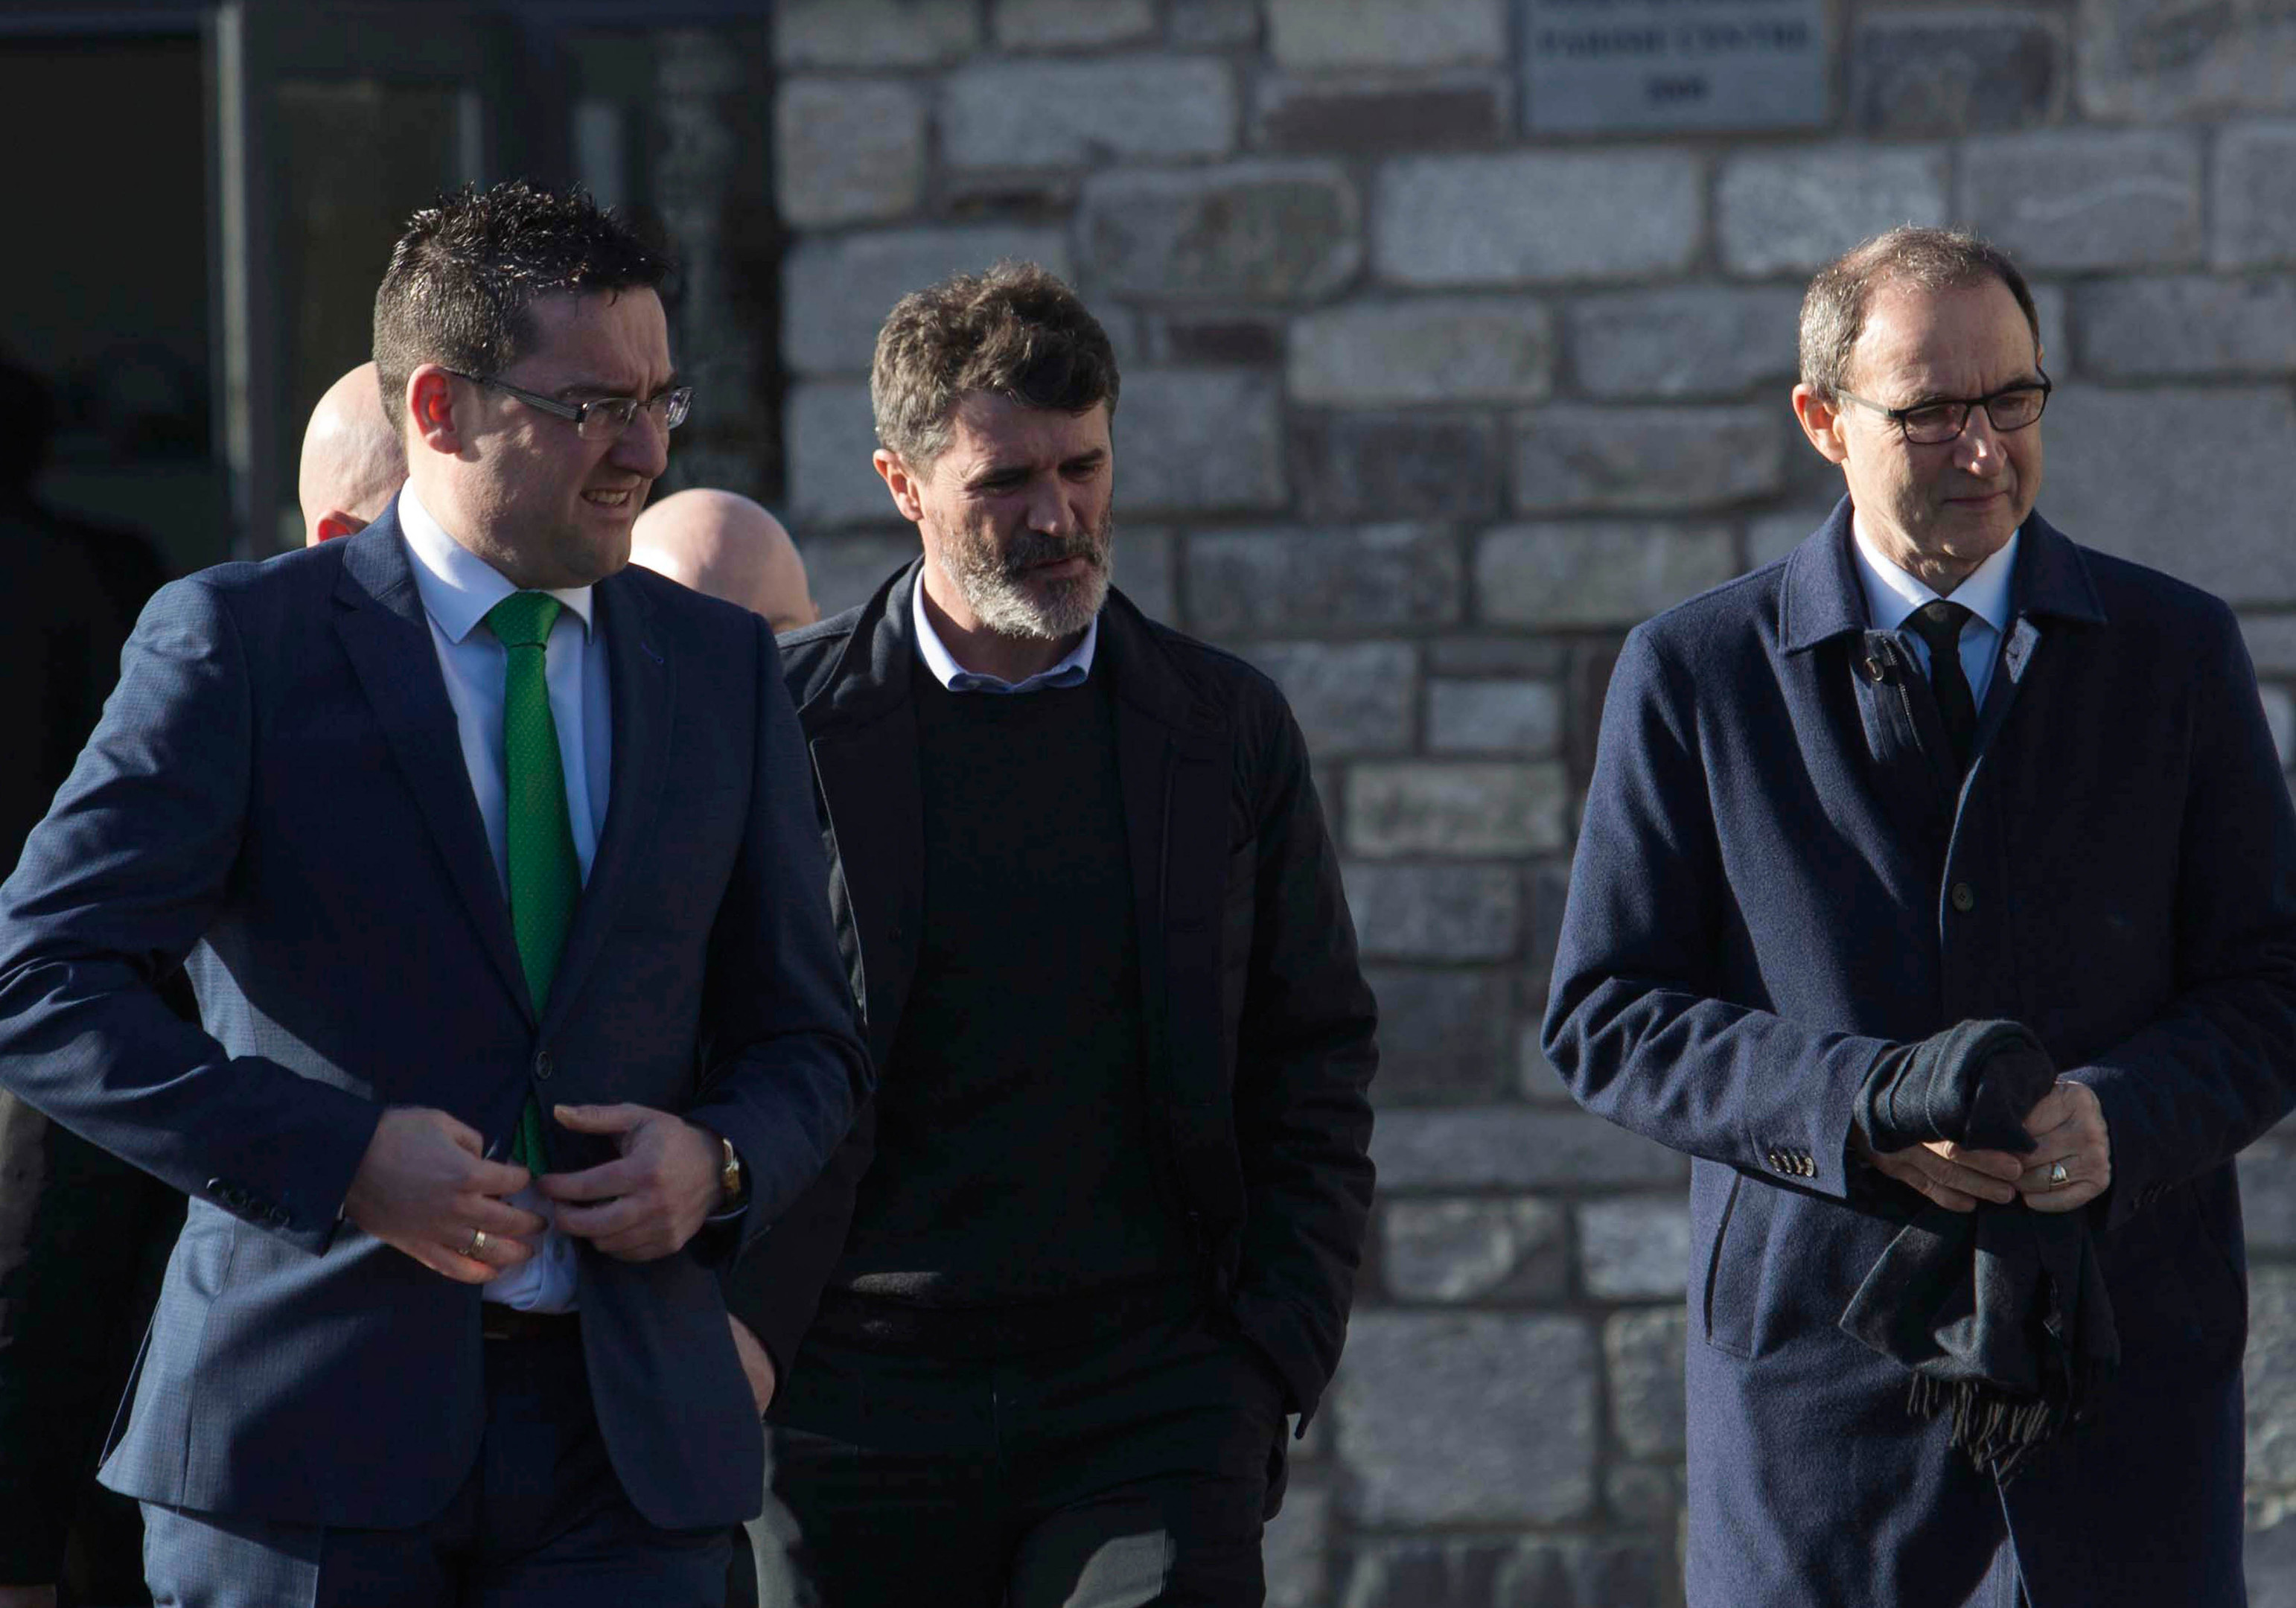 Roy Keane (centre) and Martin O'Neill (right) arrive for the funeral of former Celtic and Manchester United footballer Liam Miller.